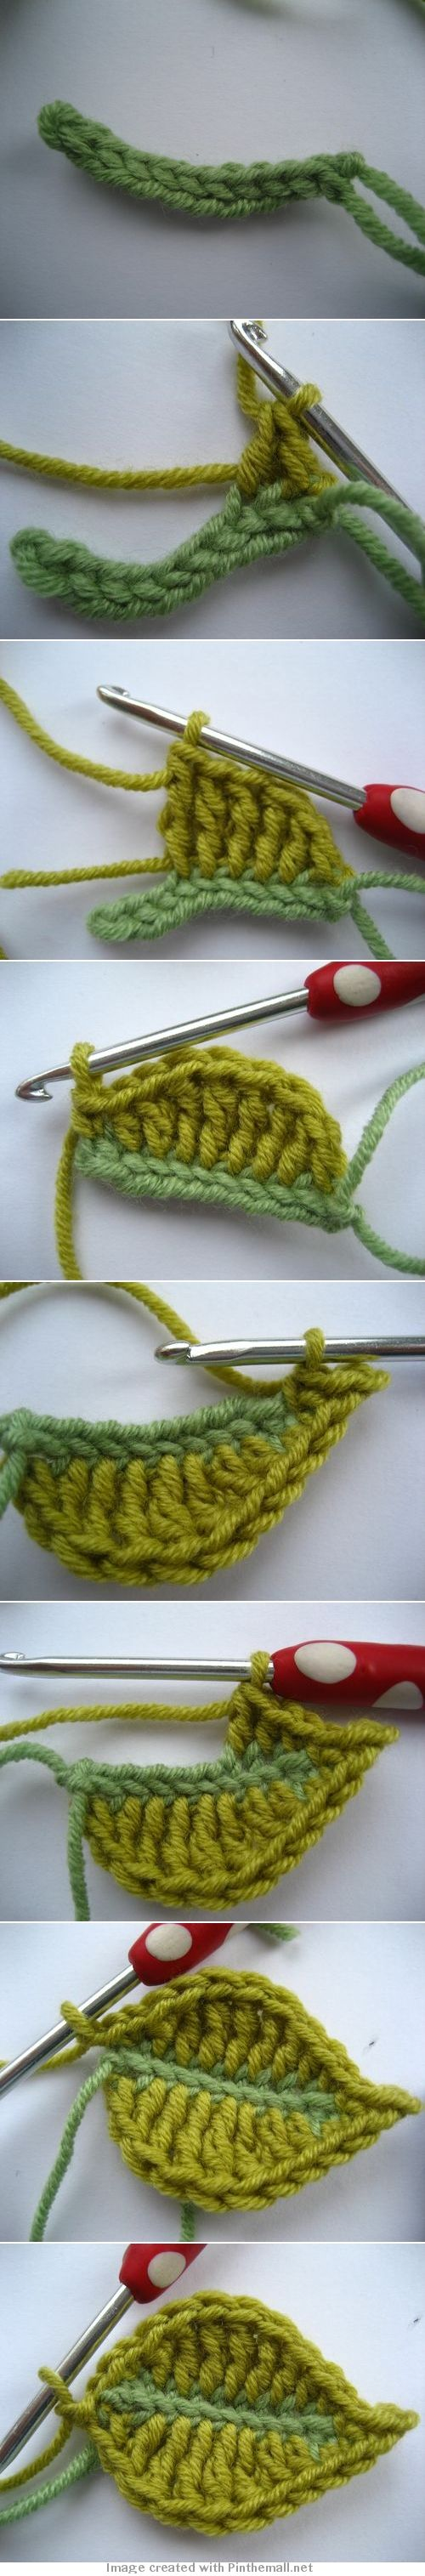 "#Crochet #Tutorial from Attic24.typepad.com ""Clear pictures and text. I especially love the contrasting colored leaf vein."" comment via #KnittingGuru"